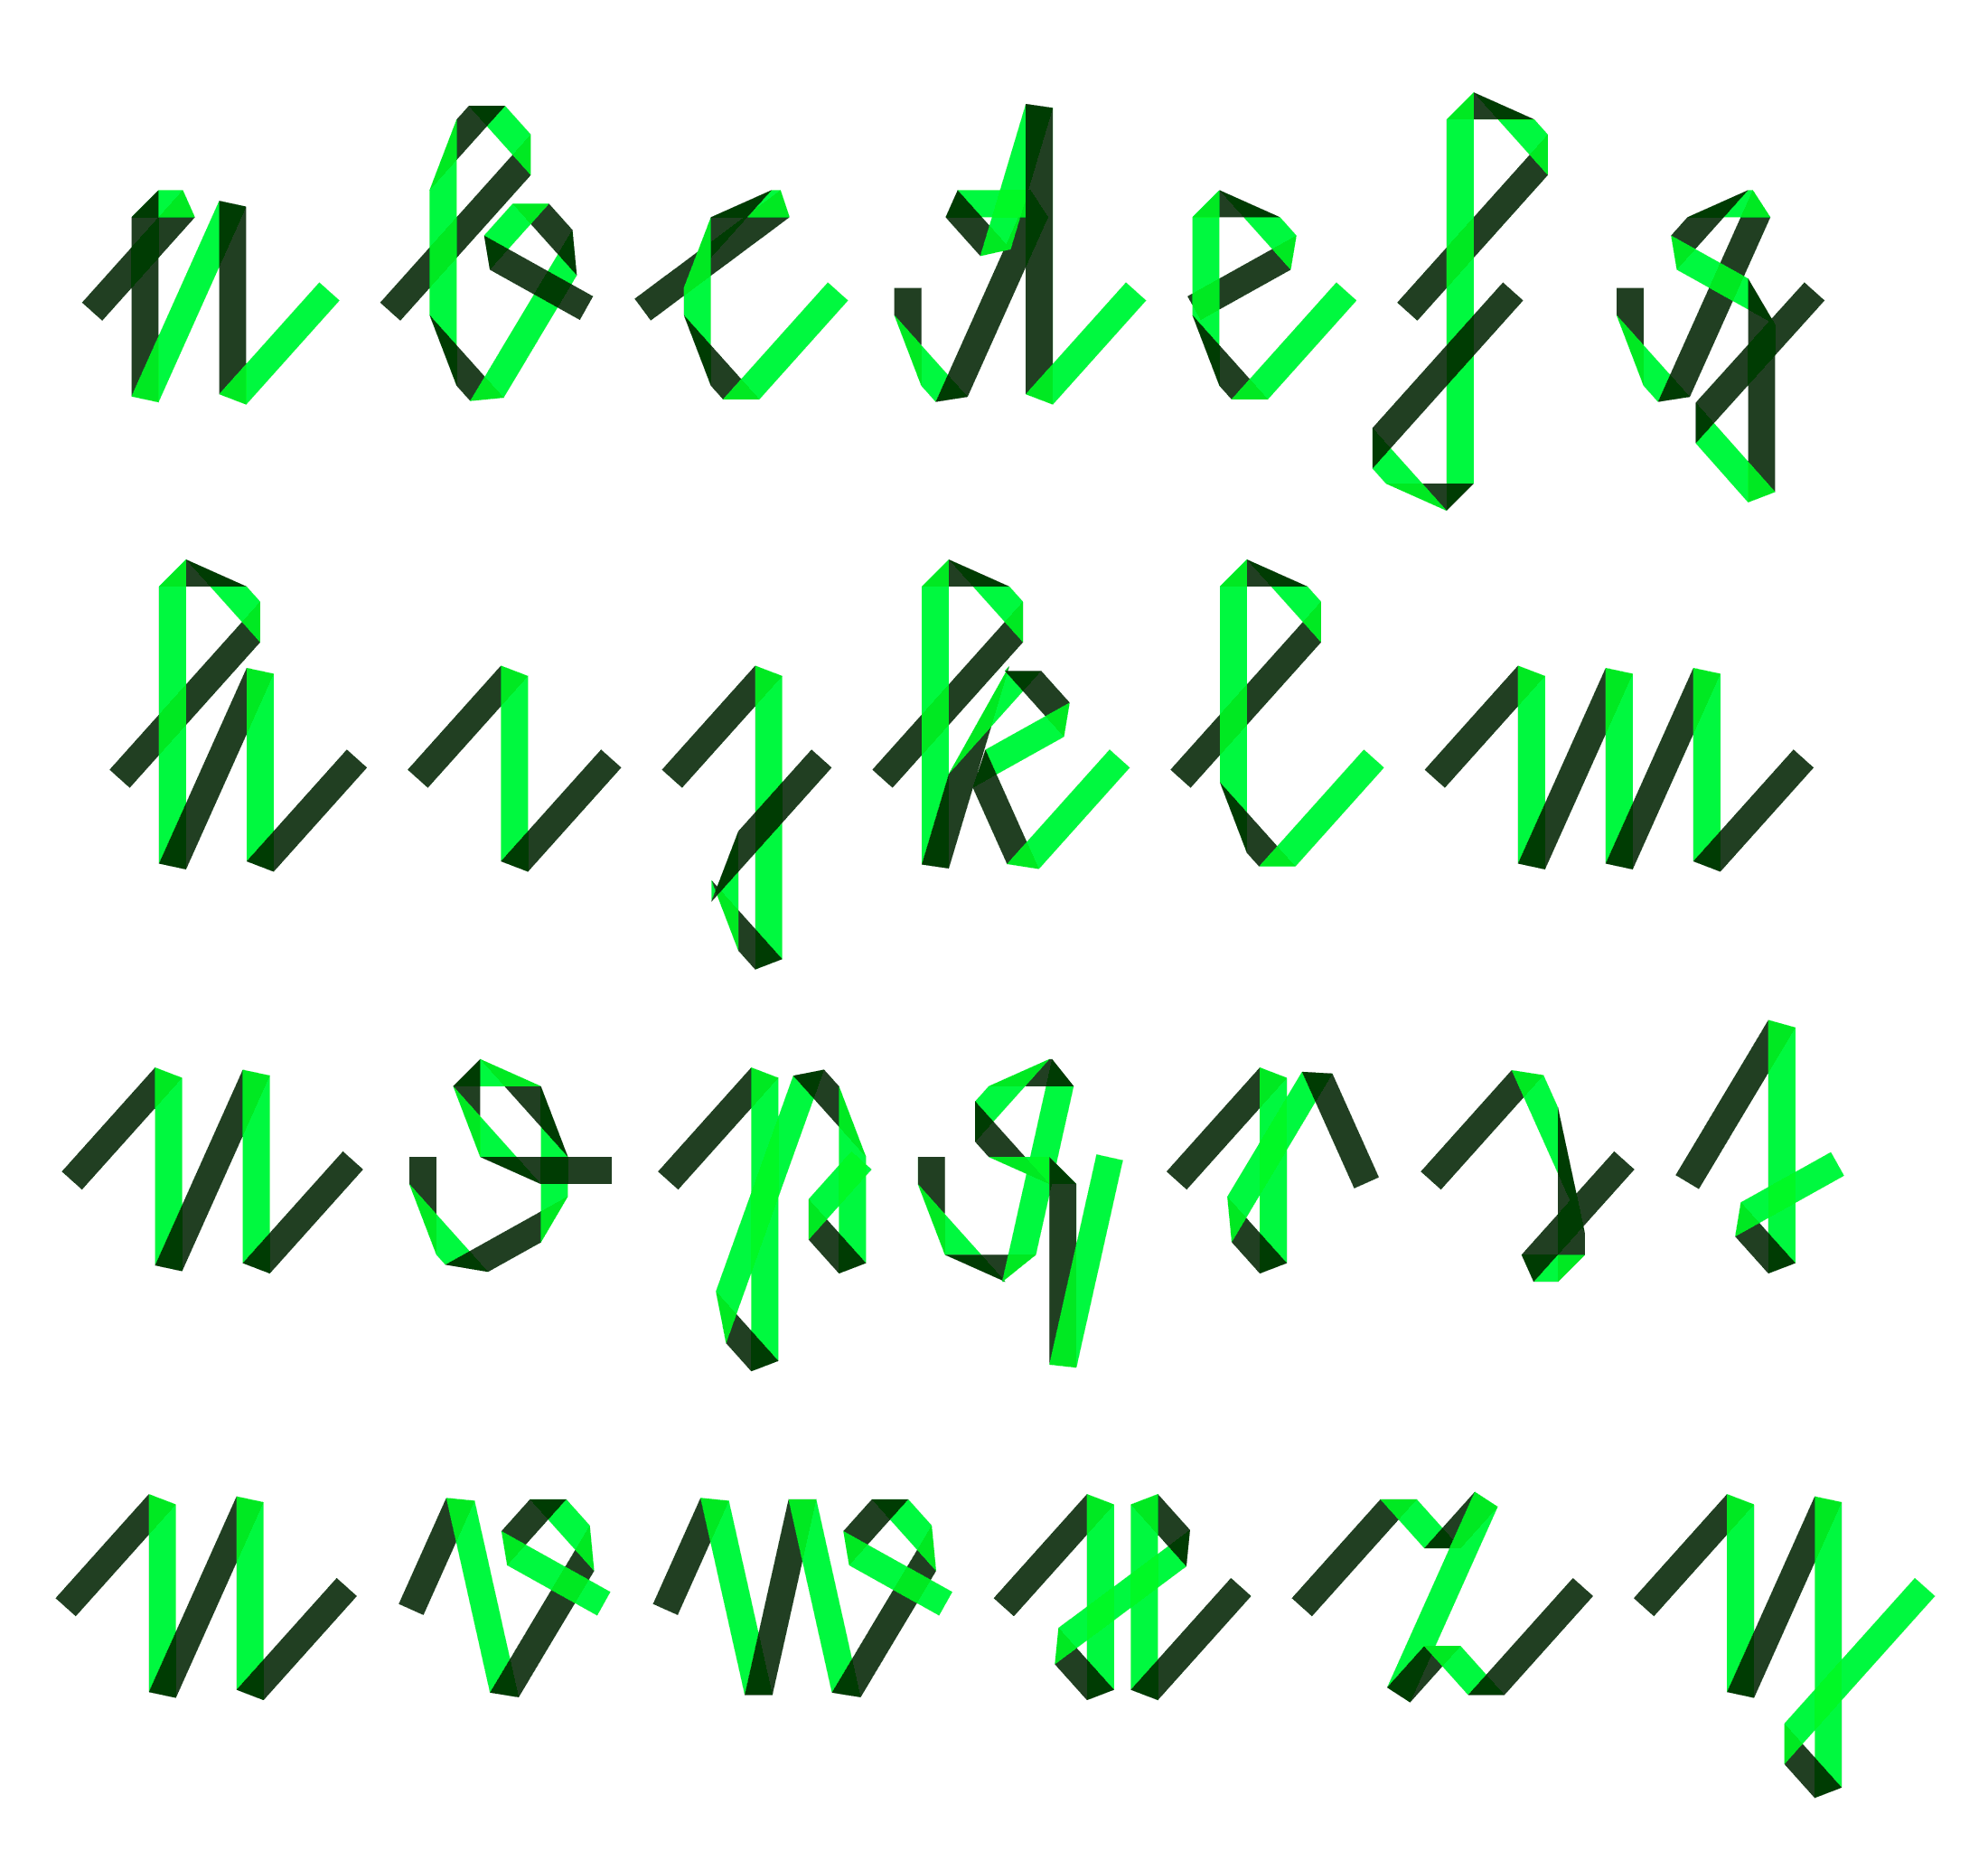 Lowercase set in one of the foldfonts